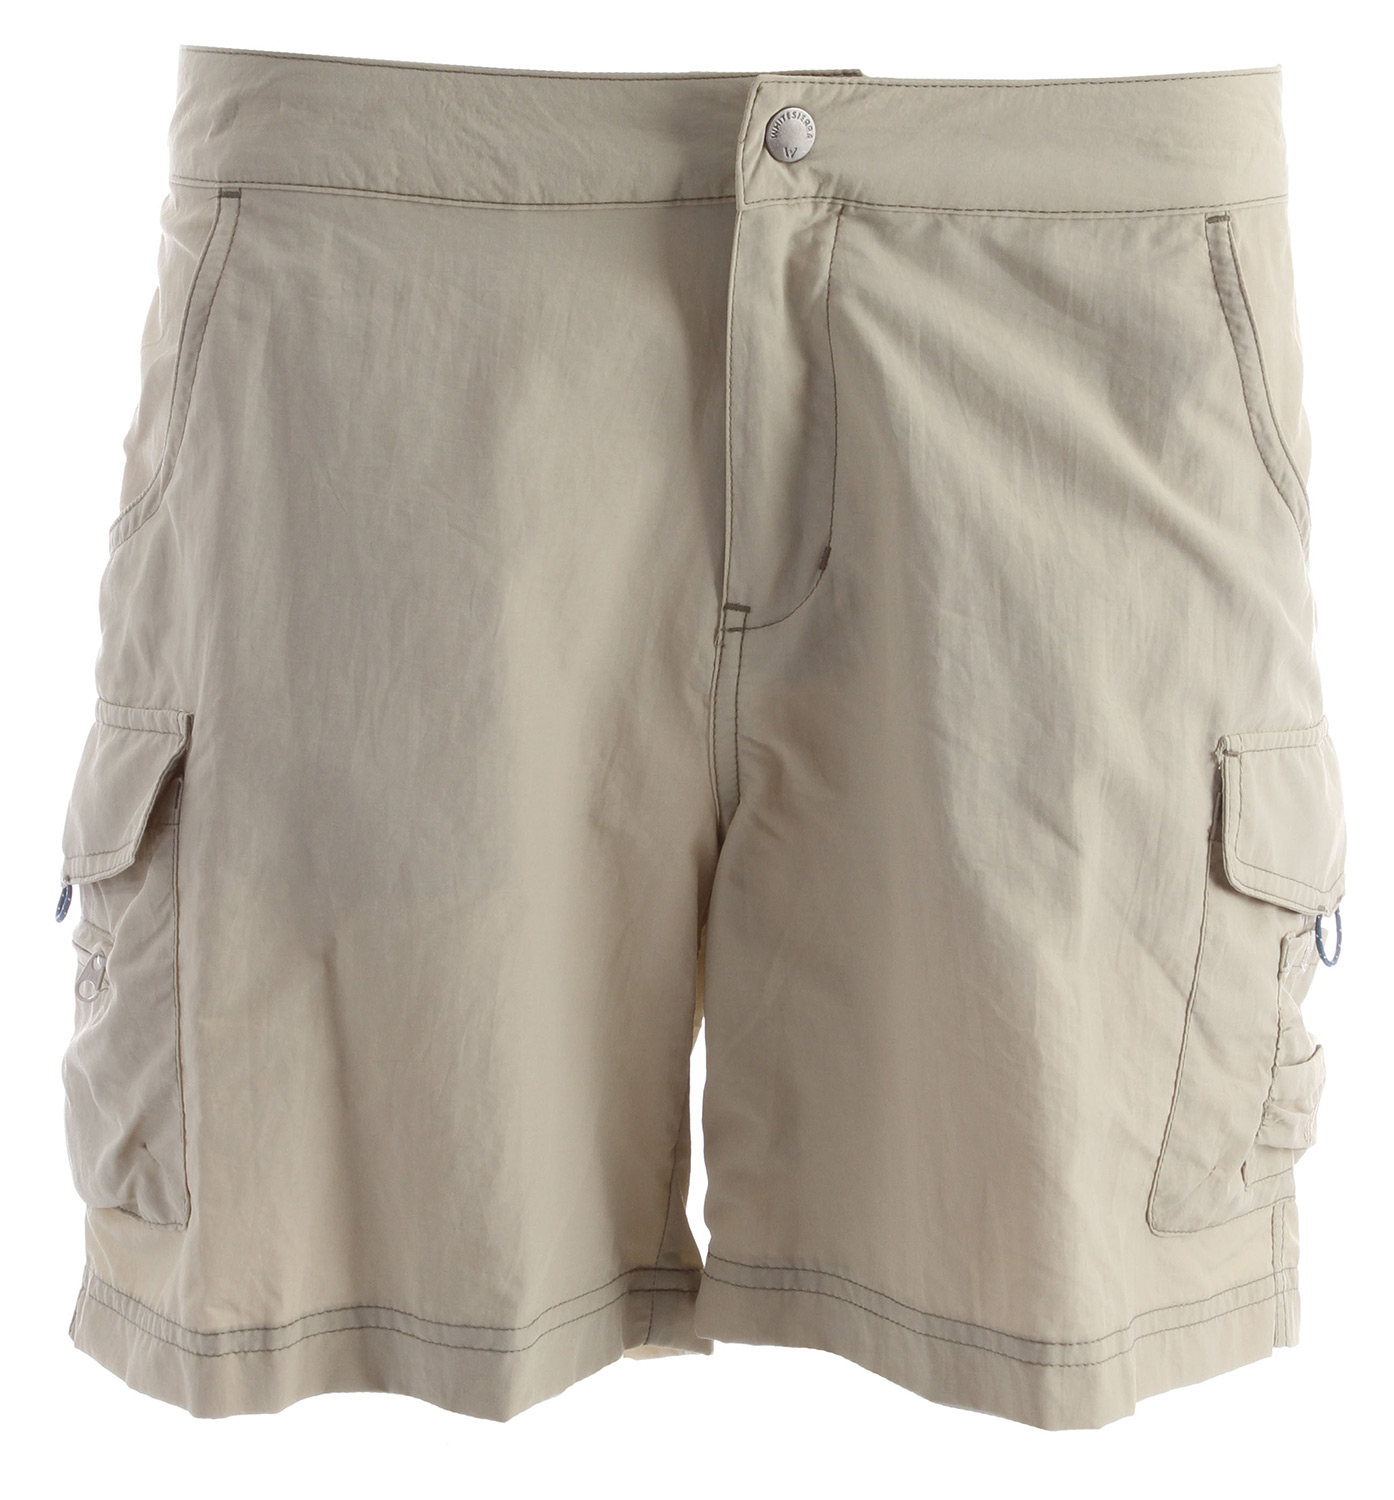 "Key Features of the White Sierra Crystal Cove River Shorts: RIVER CLOTH 100% nylon woven UPF 30 Quick dry Travel friendly Comfort fit side elastic Contrast color topstitching Side cargo pockets Fabric weight: 4oz Inseam: 6"" - $28.00"